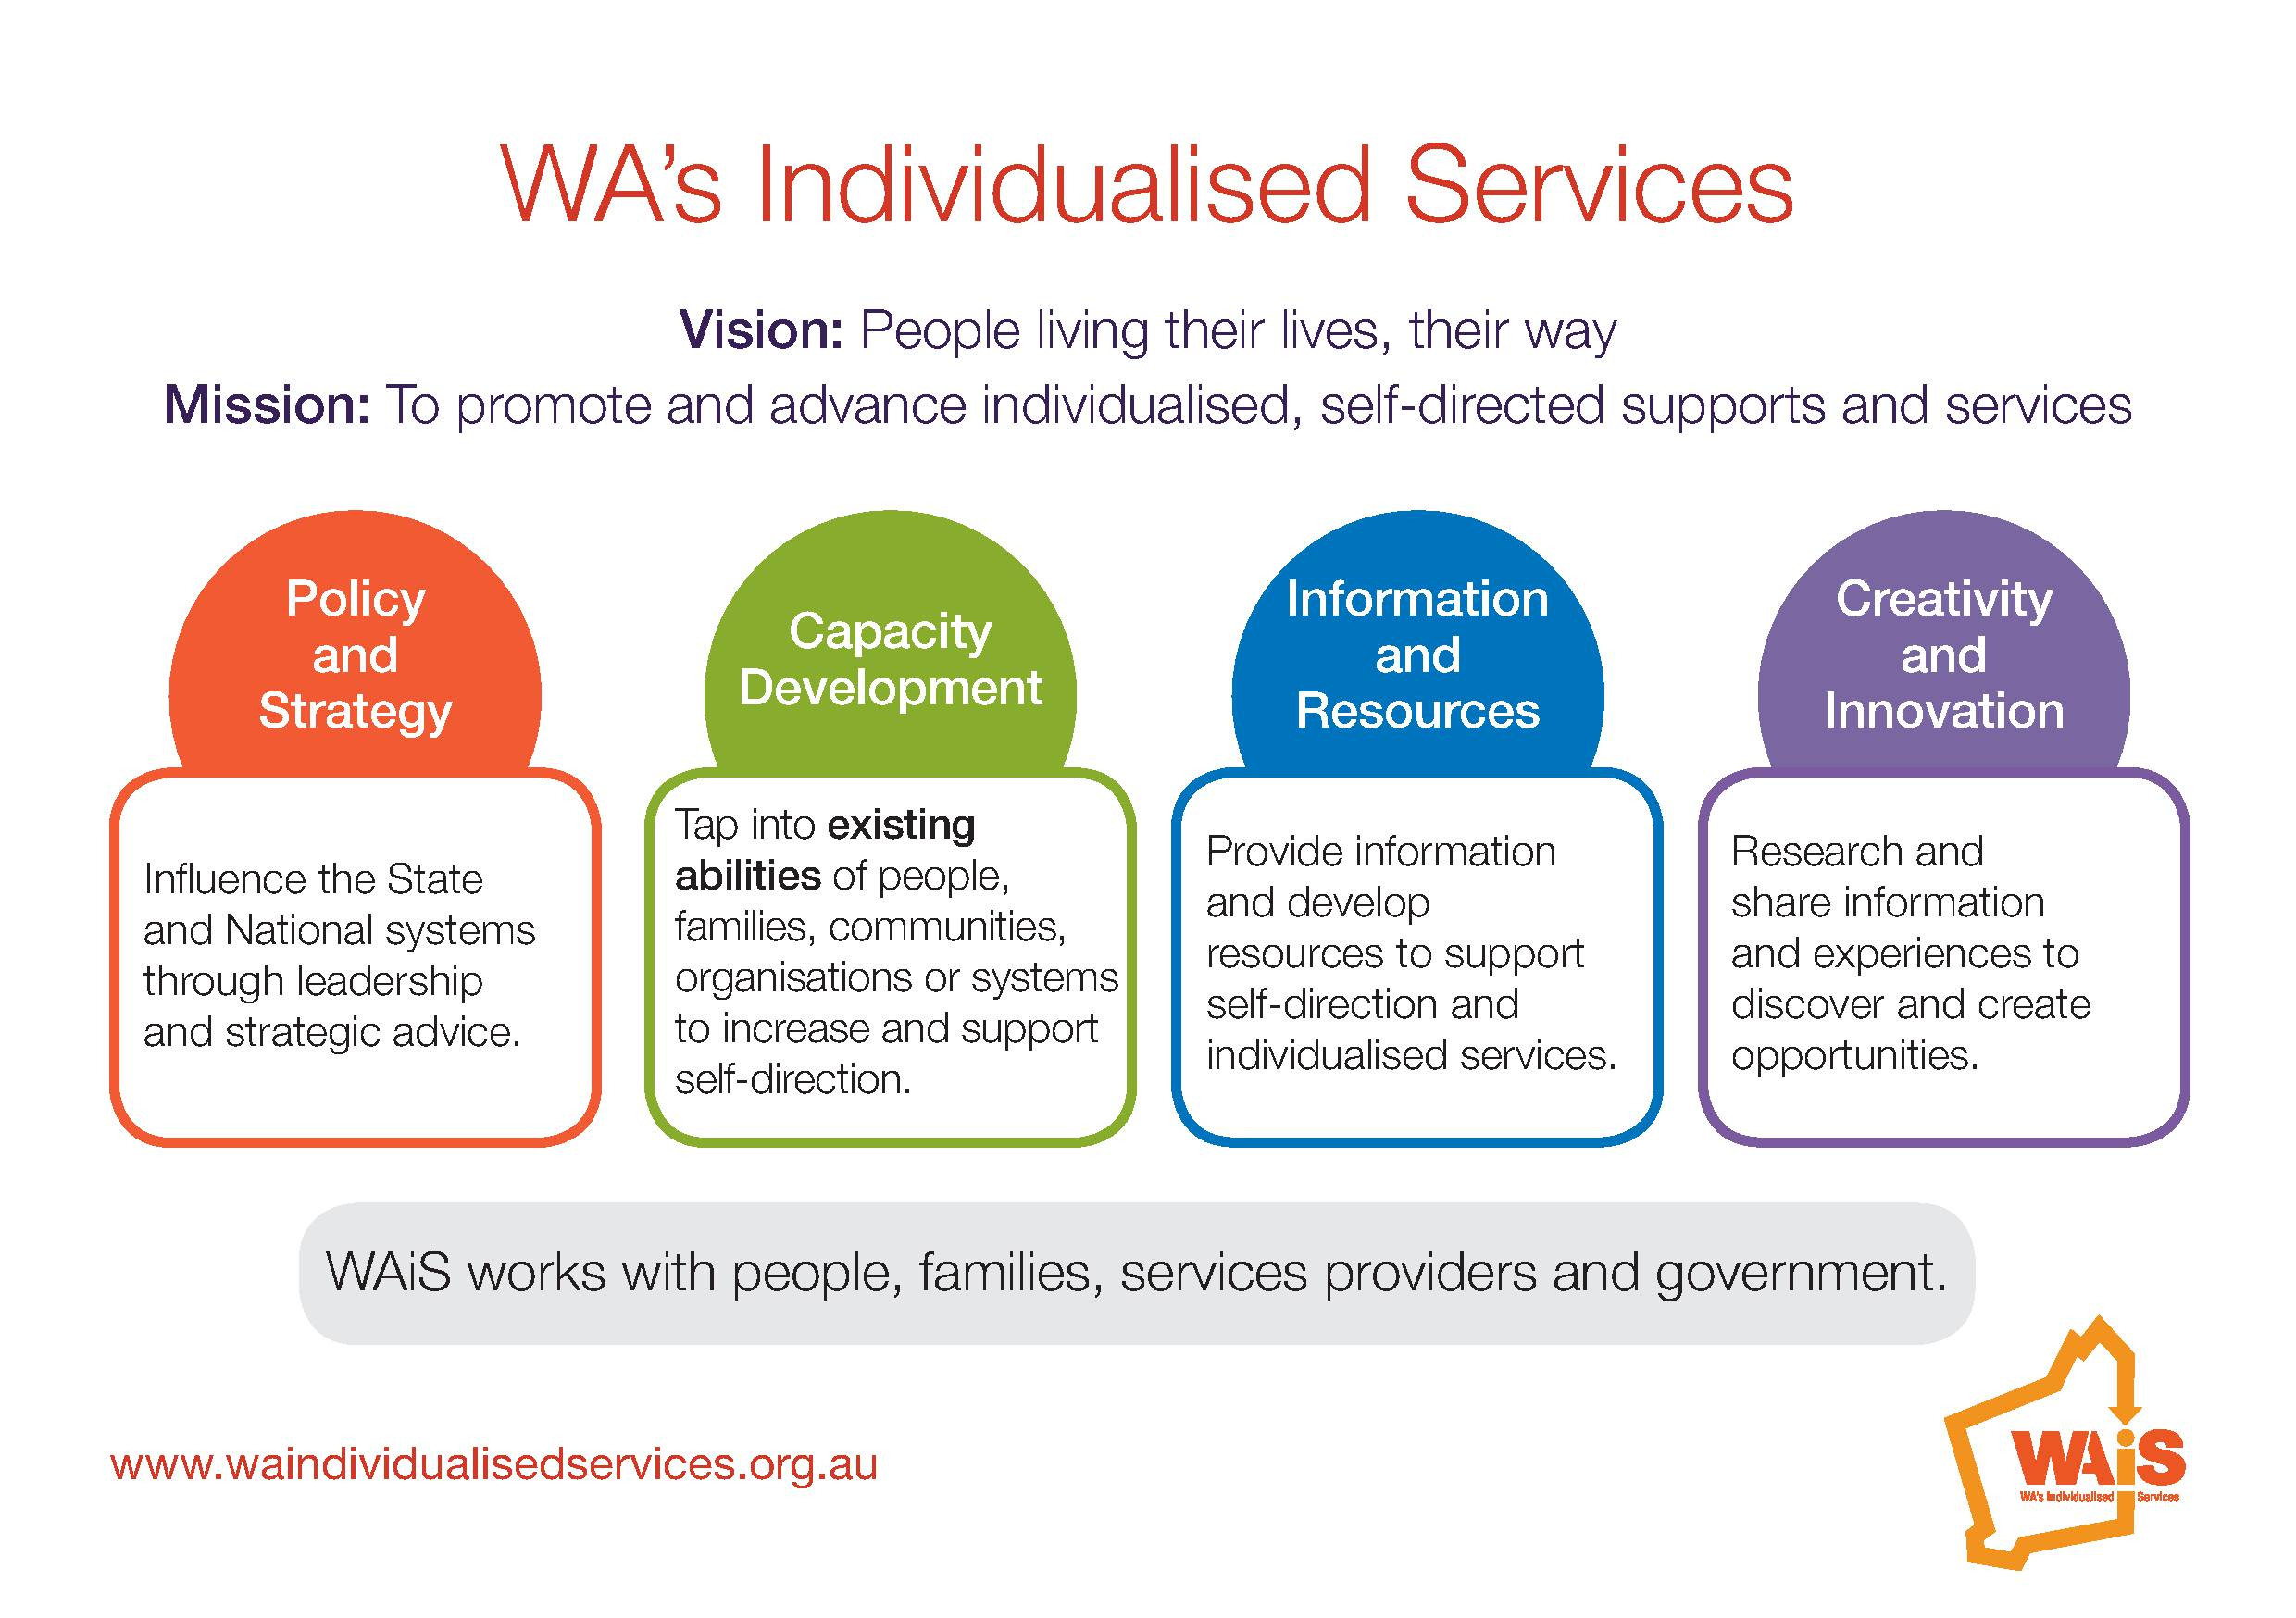 Vision: People living their lives, their way Mission: To promote and advance individualised, self-directed supports and services Policy and Strategy – Influence the State and National systems through leadership and strategic advice. Capacity Development – Tap into existing abilities of people, families, communities, organisations or systems to increase and support self-direction. Information and Resources – Provide information and develop resources to support self-direction and individualised services. Creativity and Innovation – Research and share information and experiences to discover and create opportunities. WAiS works with people, families, service providers and government.